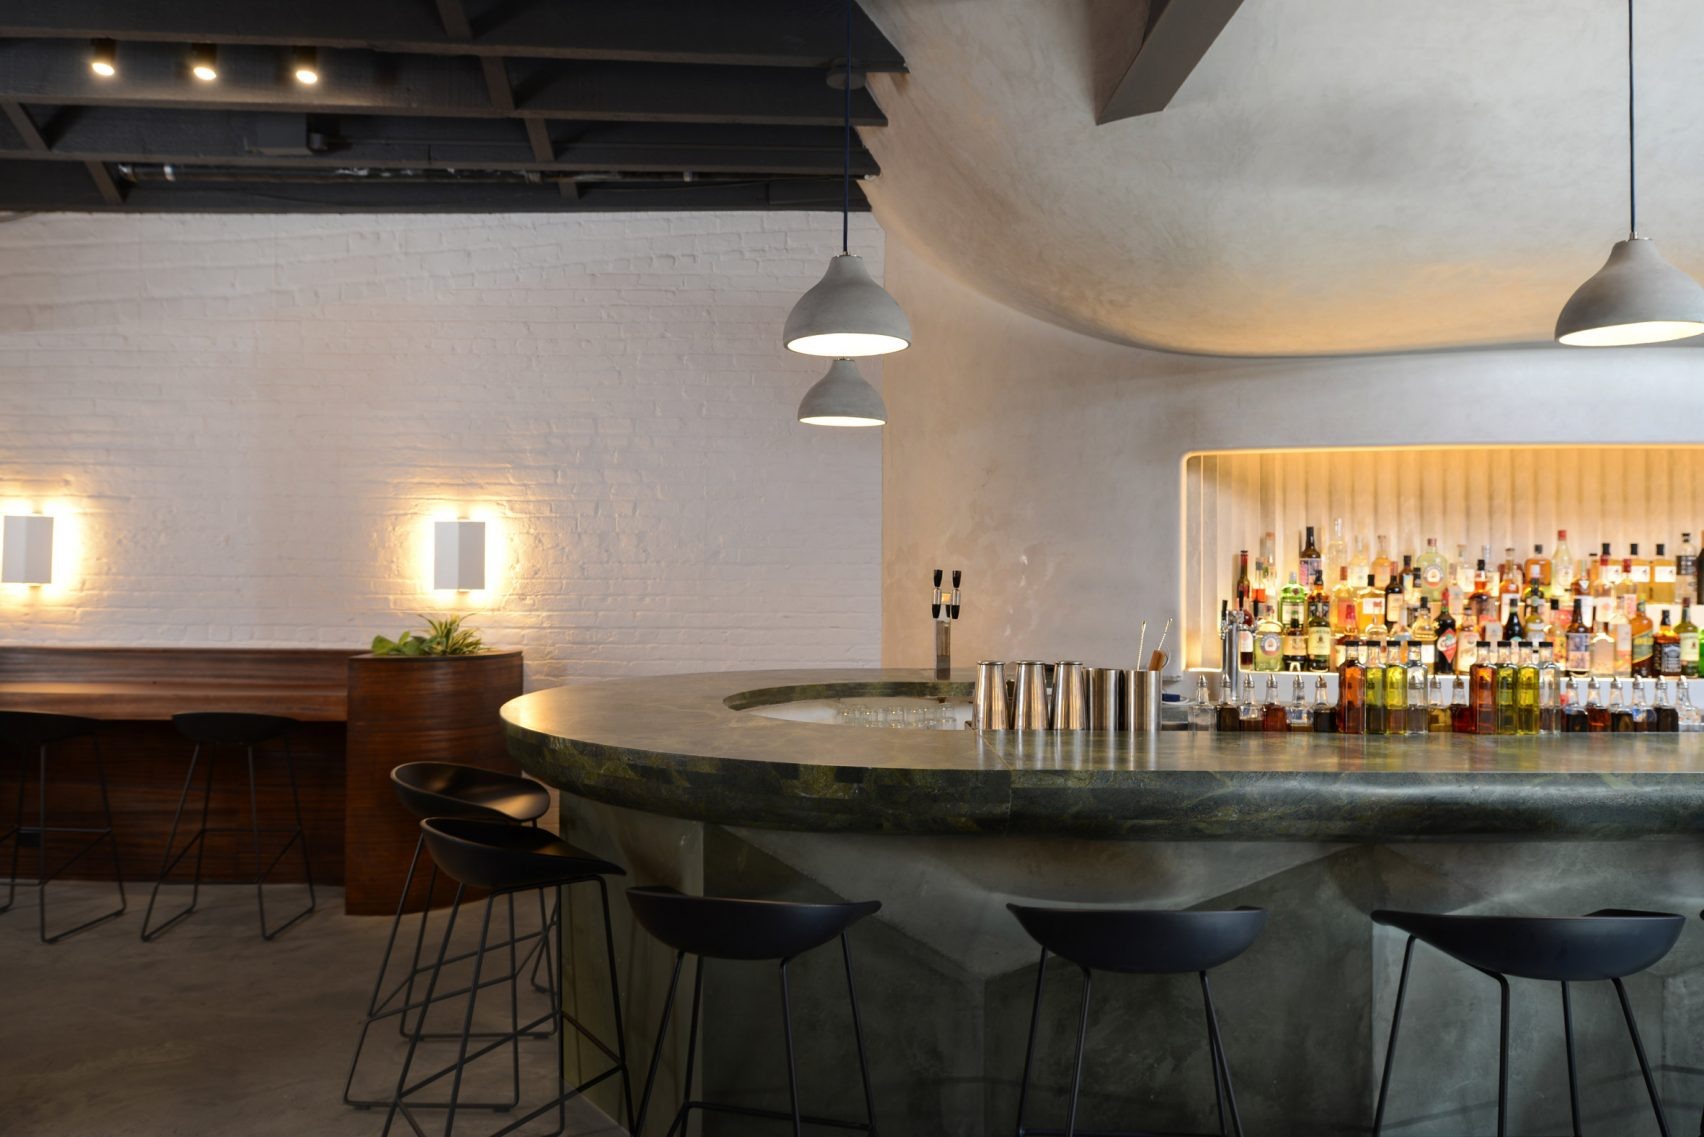 Corner view of the bar at Bar Beau, a bar and coffee shop with MEP design services provided by 2L Engineering